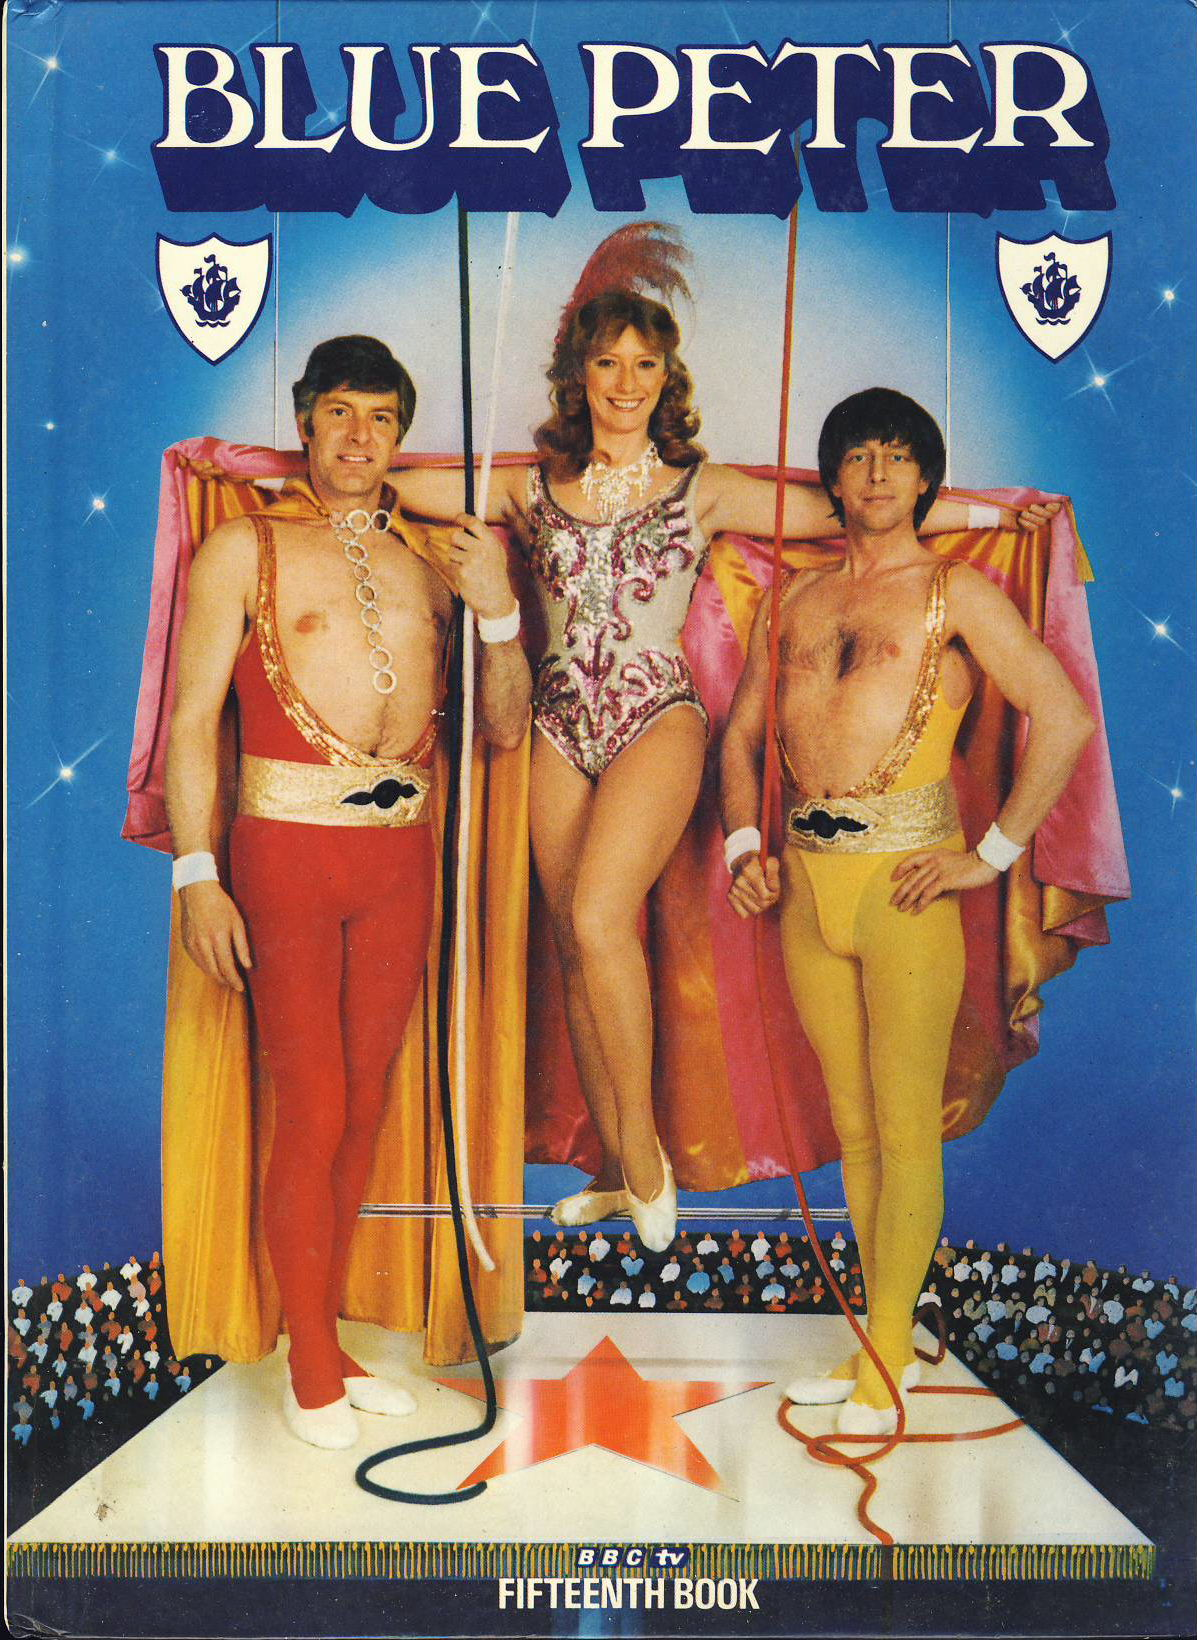 1978 Blue Peter BBC TV Fifteenth book ref374 Pre-owned book in good condition for age. Please see large photo for more details.